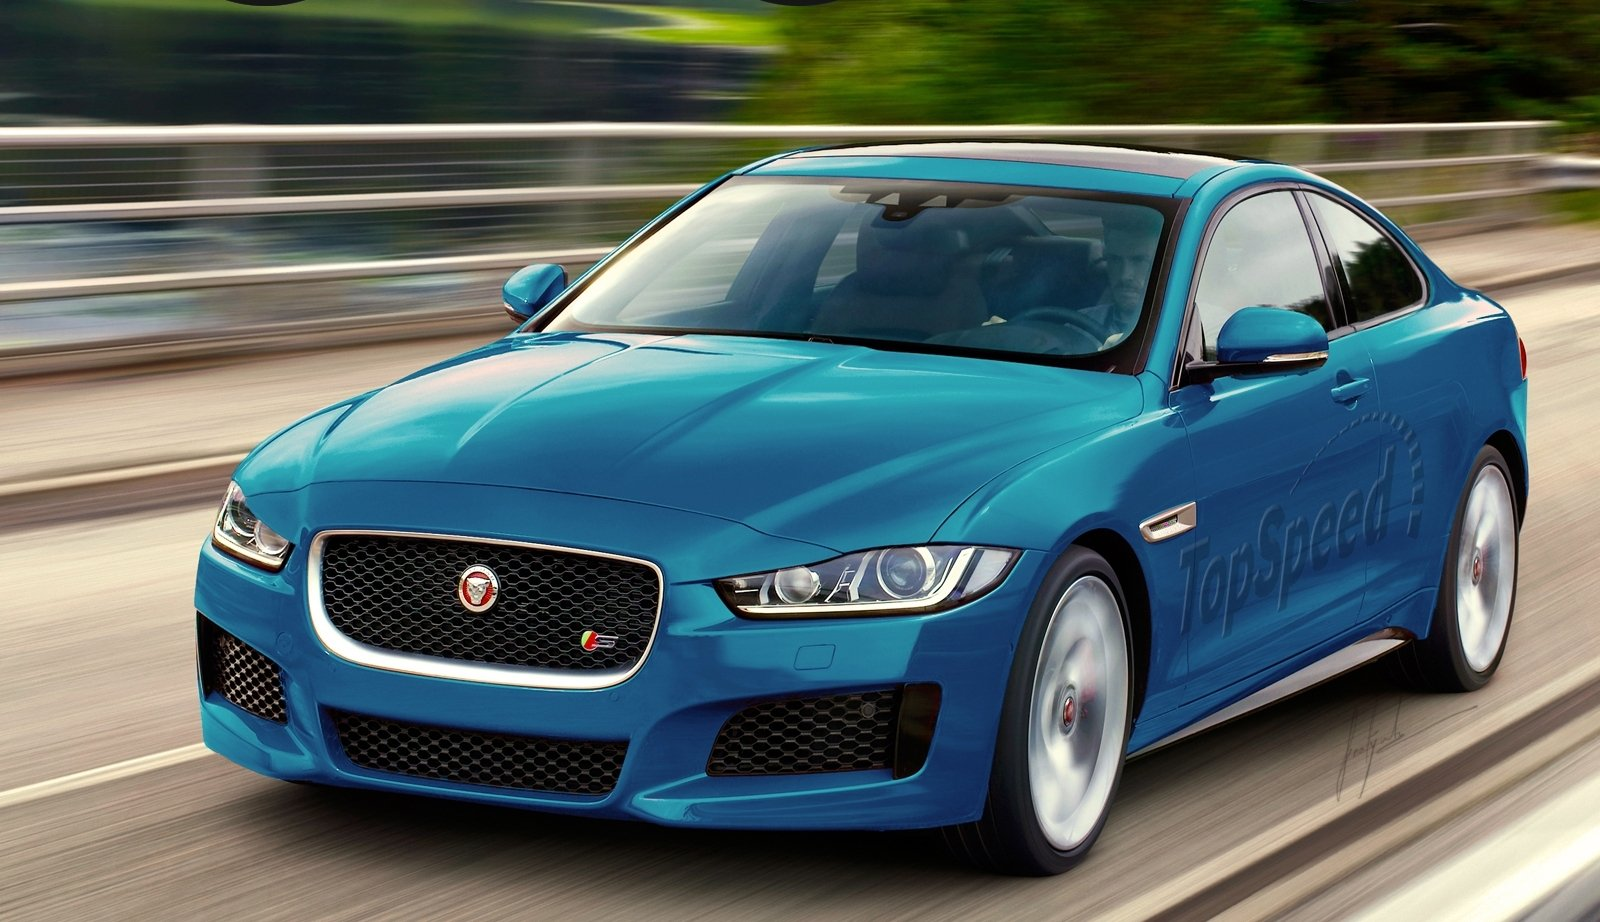 2017 Jaguar XE Coupe Pictures, Photos, Wallpapers.